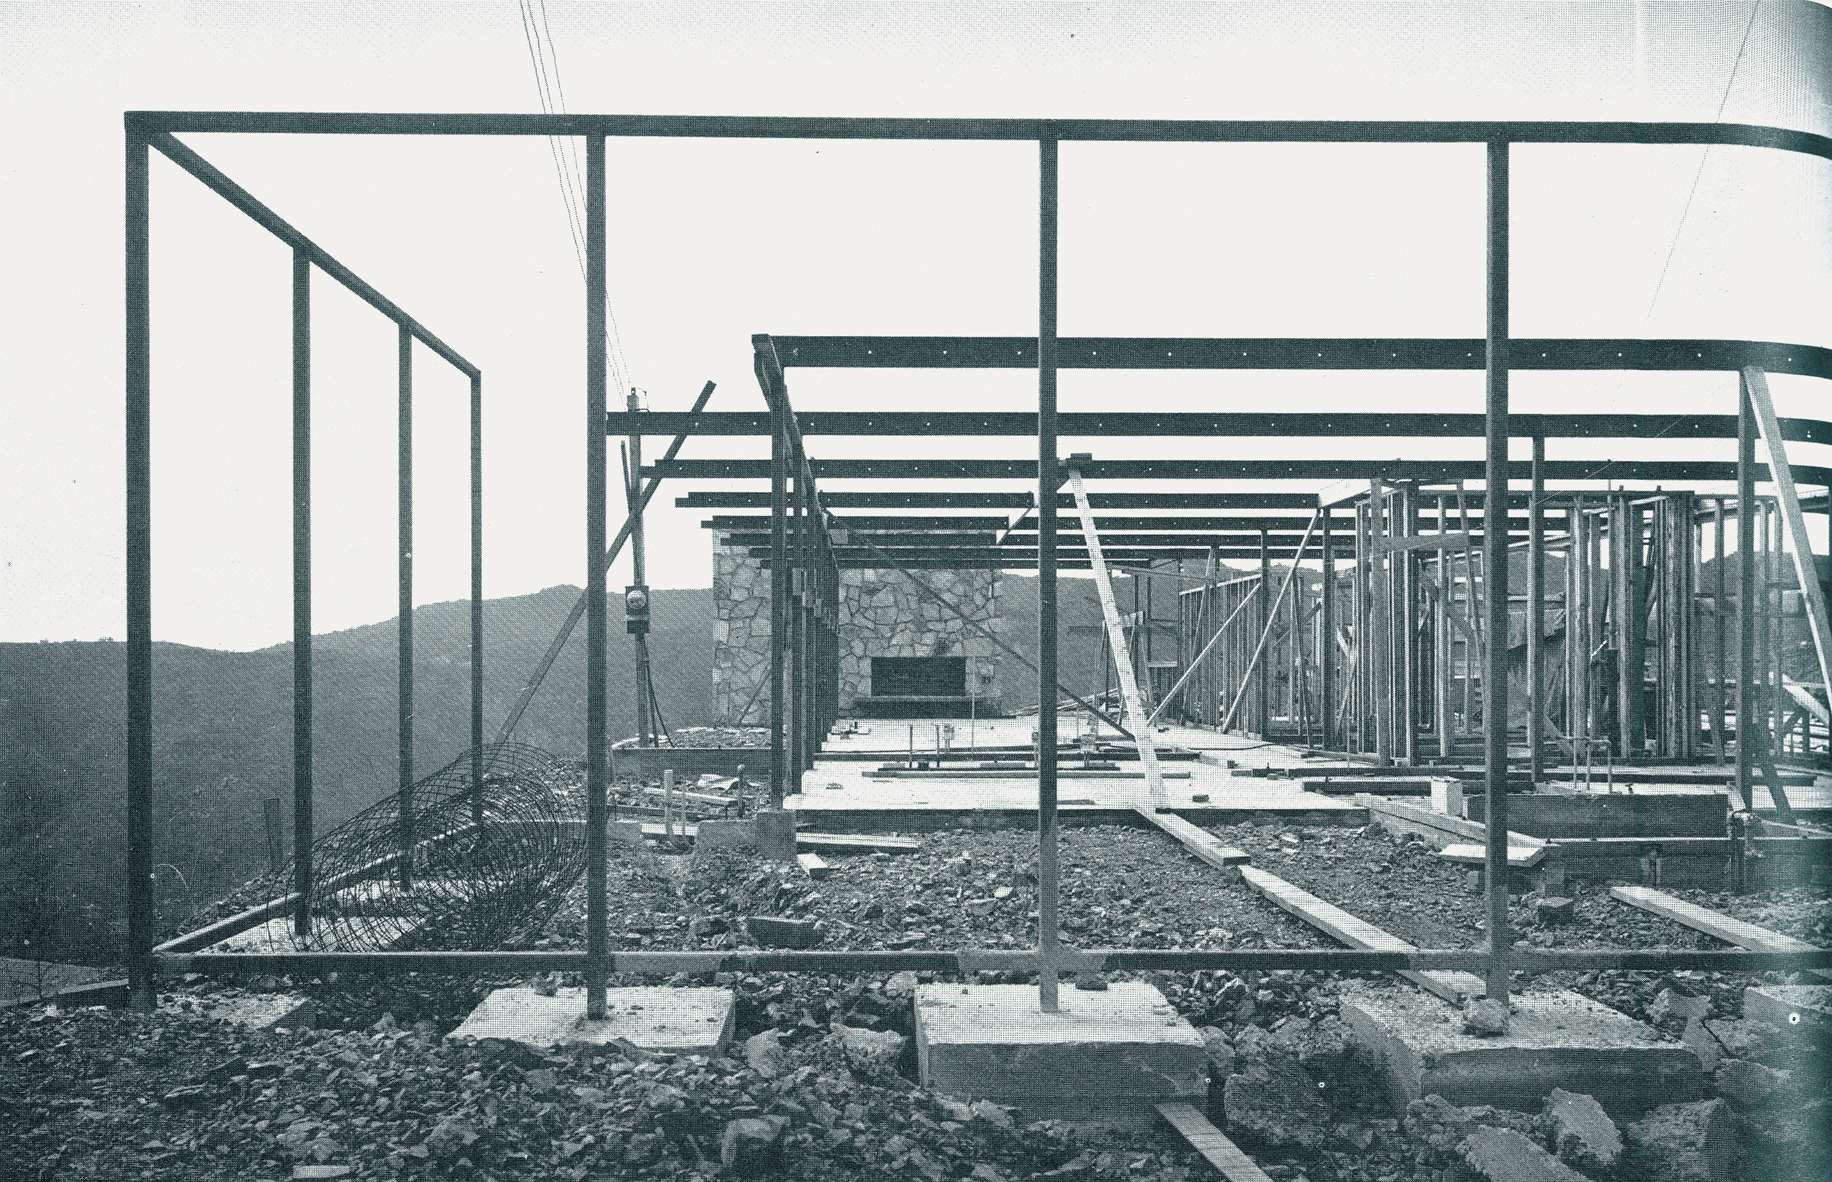 Construction of the steel frame in Craig Ellwood's house #16 (1951) as published in _Arts and Architecture_.